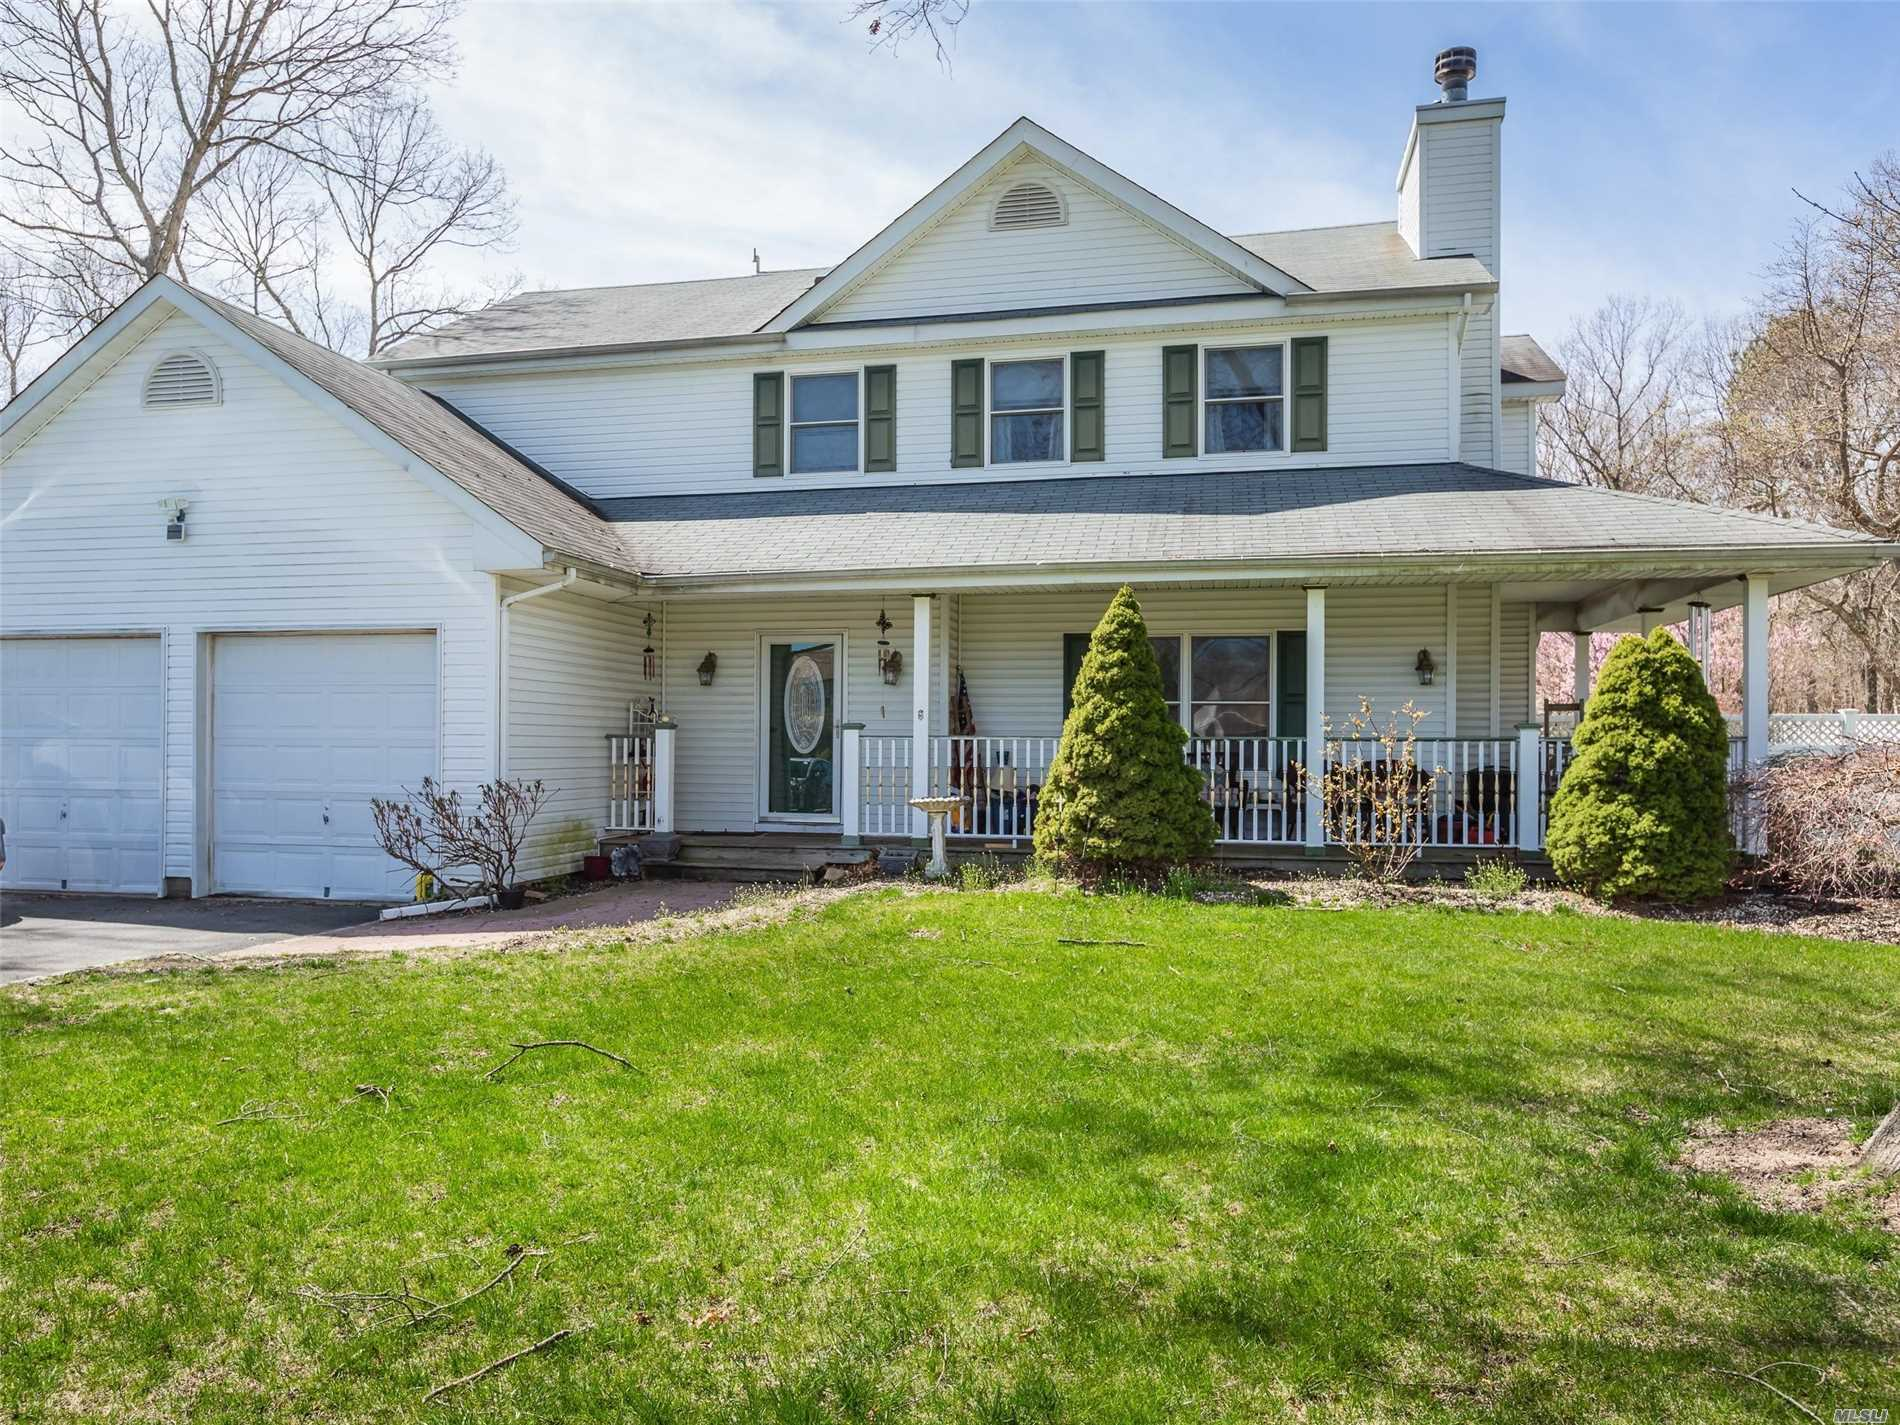 Move Right Into This 2 Story, 2252 Square Foot Home! Big Beautiful Home Positioned On Over 1 Acre of Land.  New Floors on First Floor, New Quartz Counter Top, New Stove and Refrigerator w/ Warranty, New Pool Put In 2018! Many More Updates, Come and See!